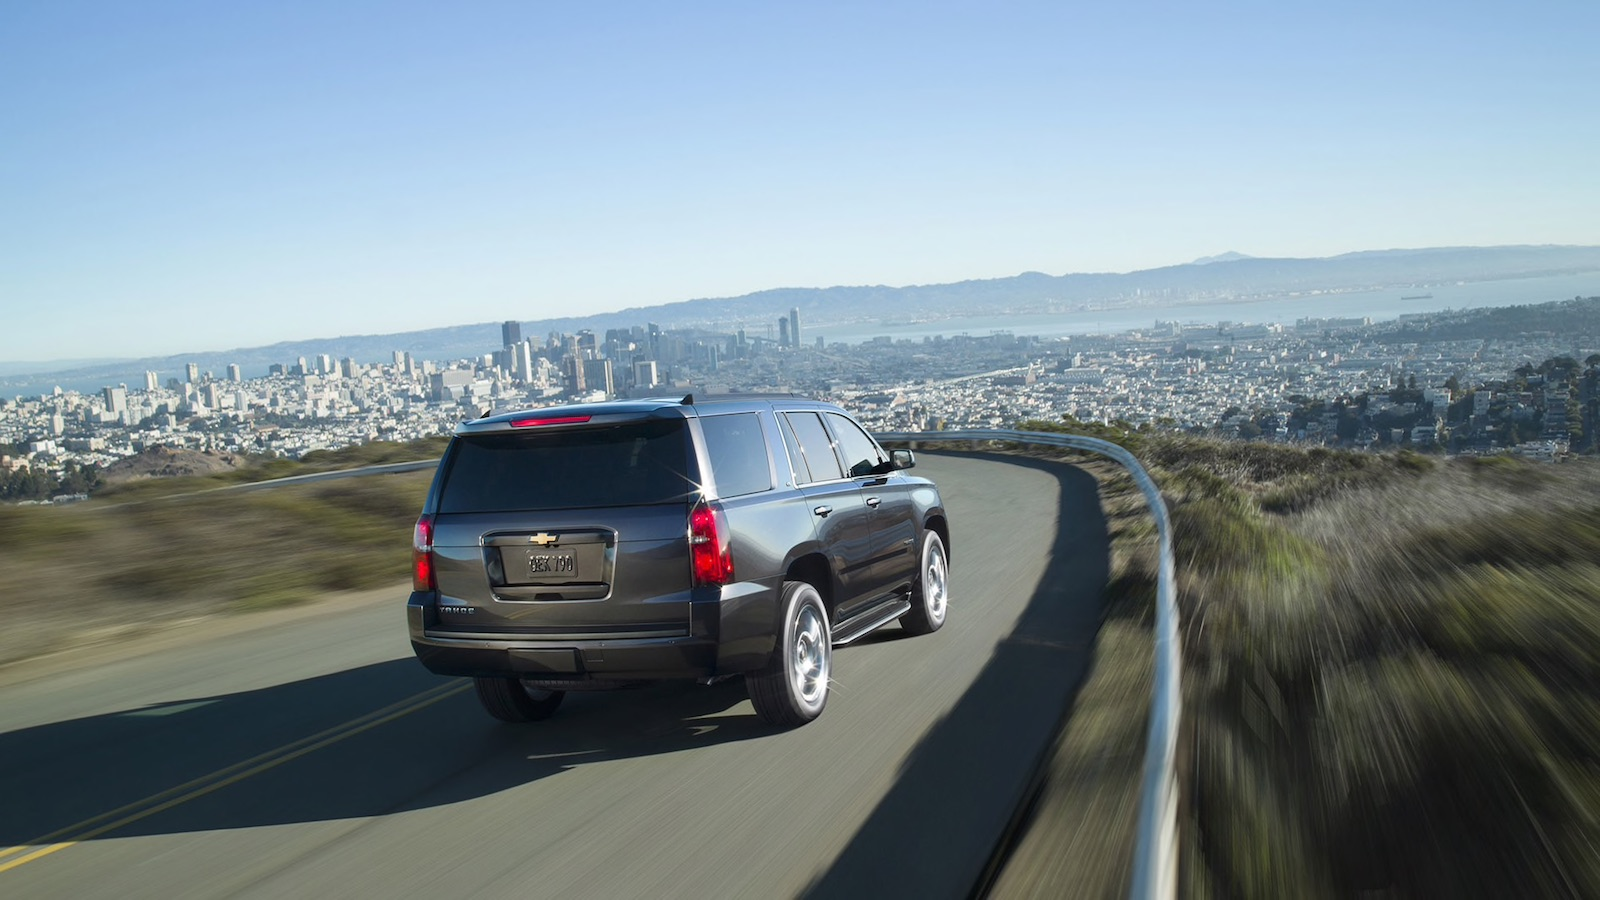 2016 Chevy Tahoe En Route